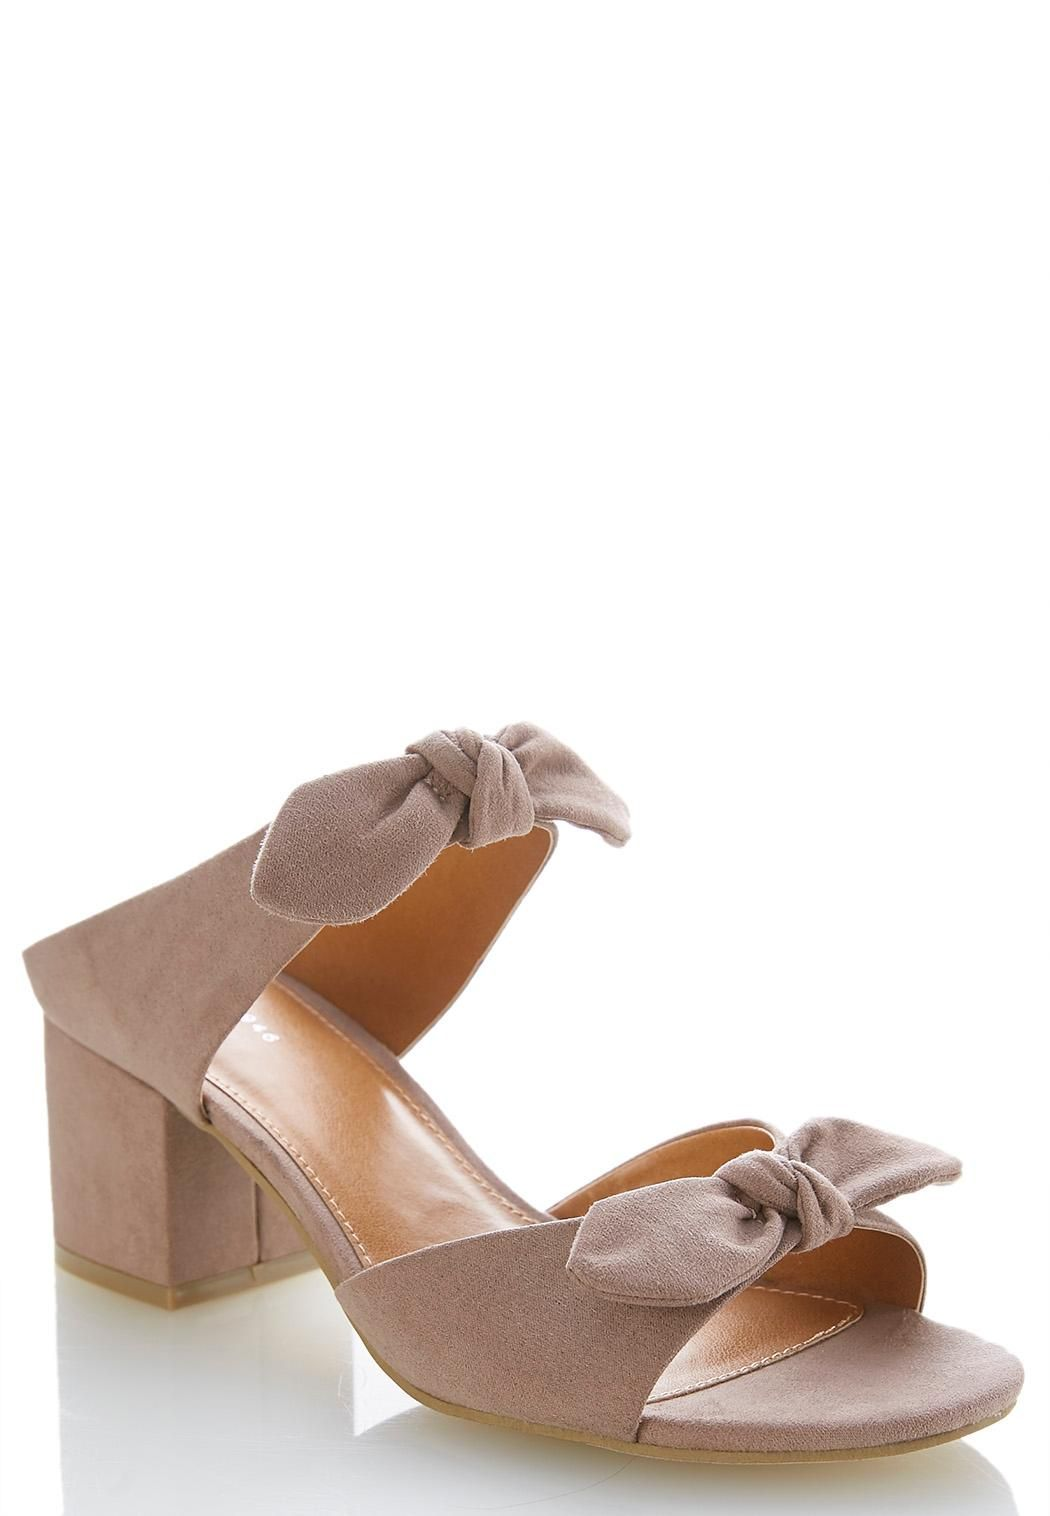 dfbb7db4ee75 Faux Suede Bow Mules Sandals Cato Fashions